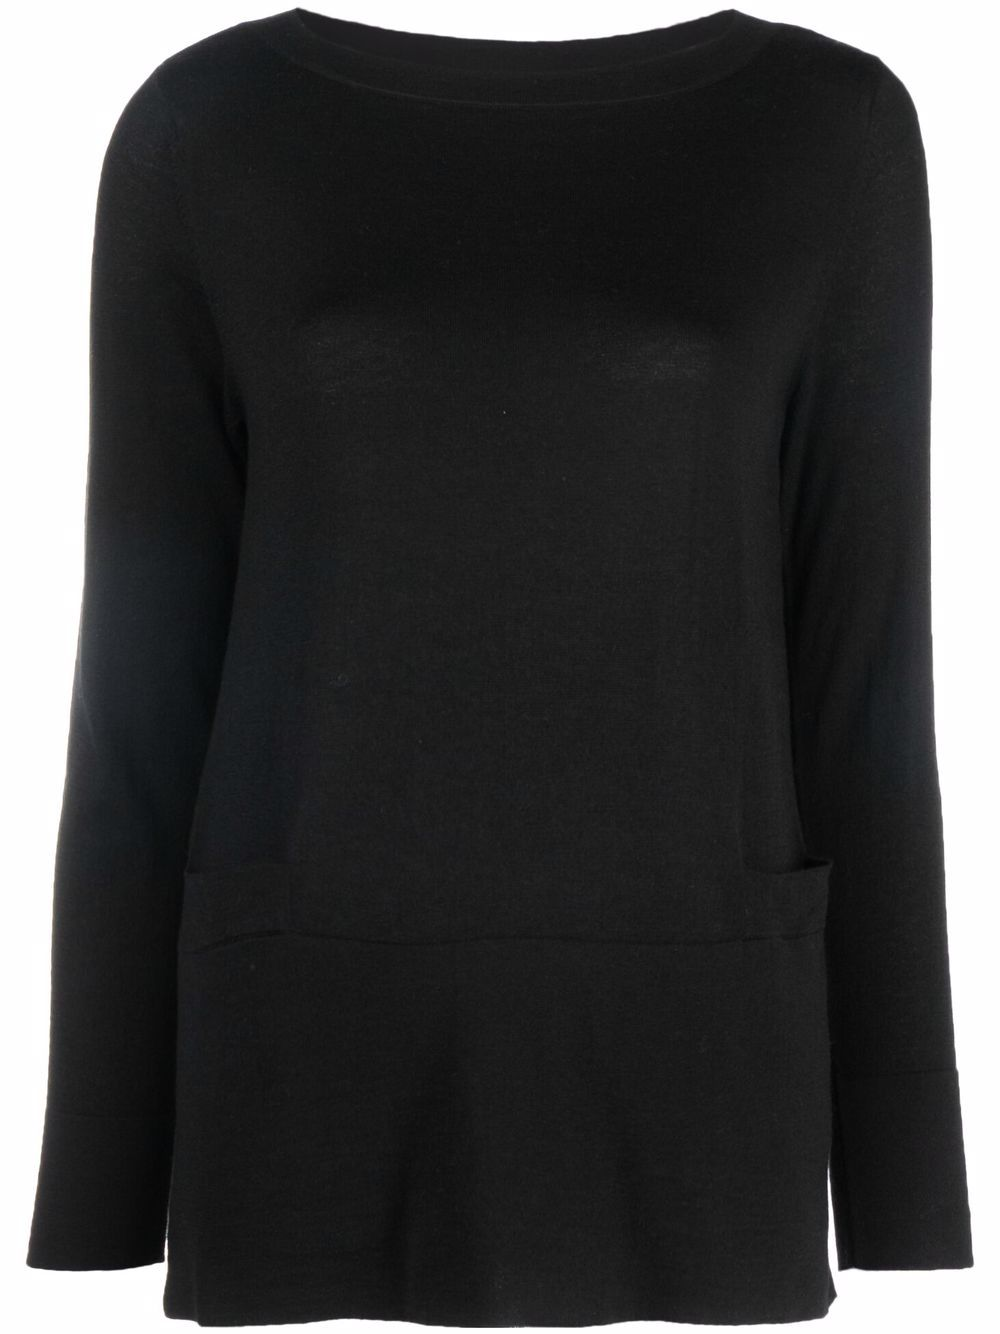 SNOBBY SHEEP- Cashmere Blend Boat Neck Sweater- Woman- 44 - Black